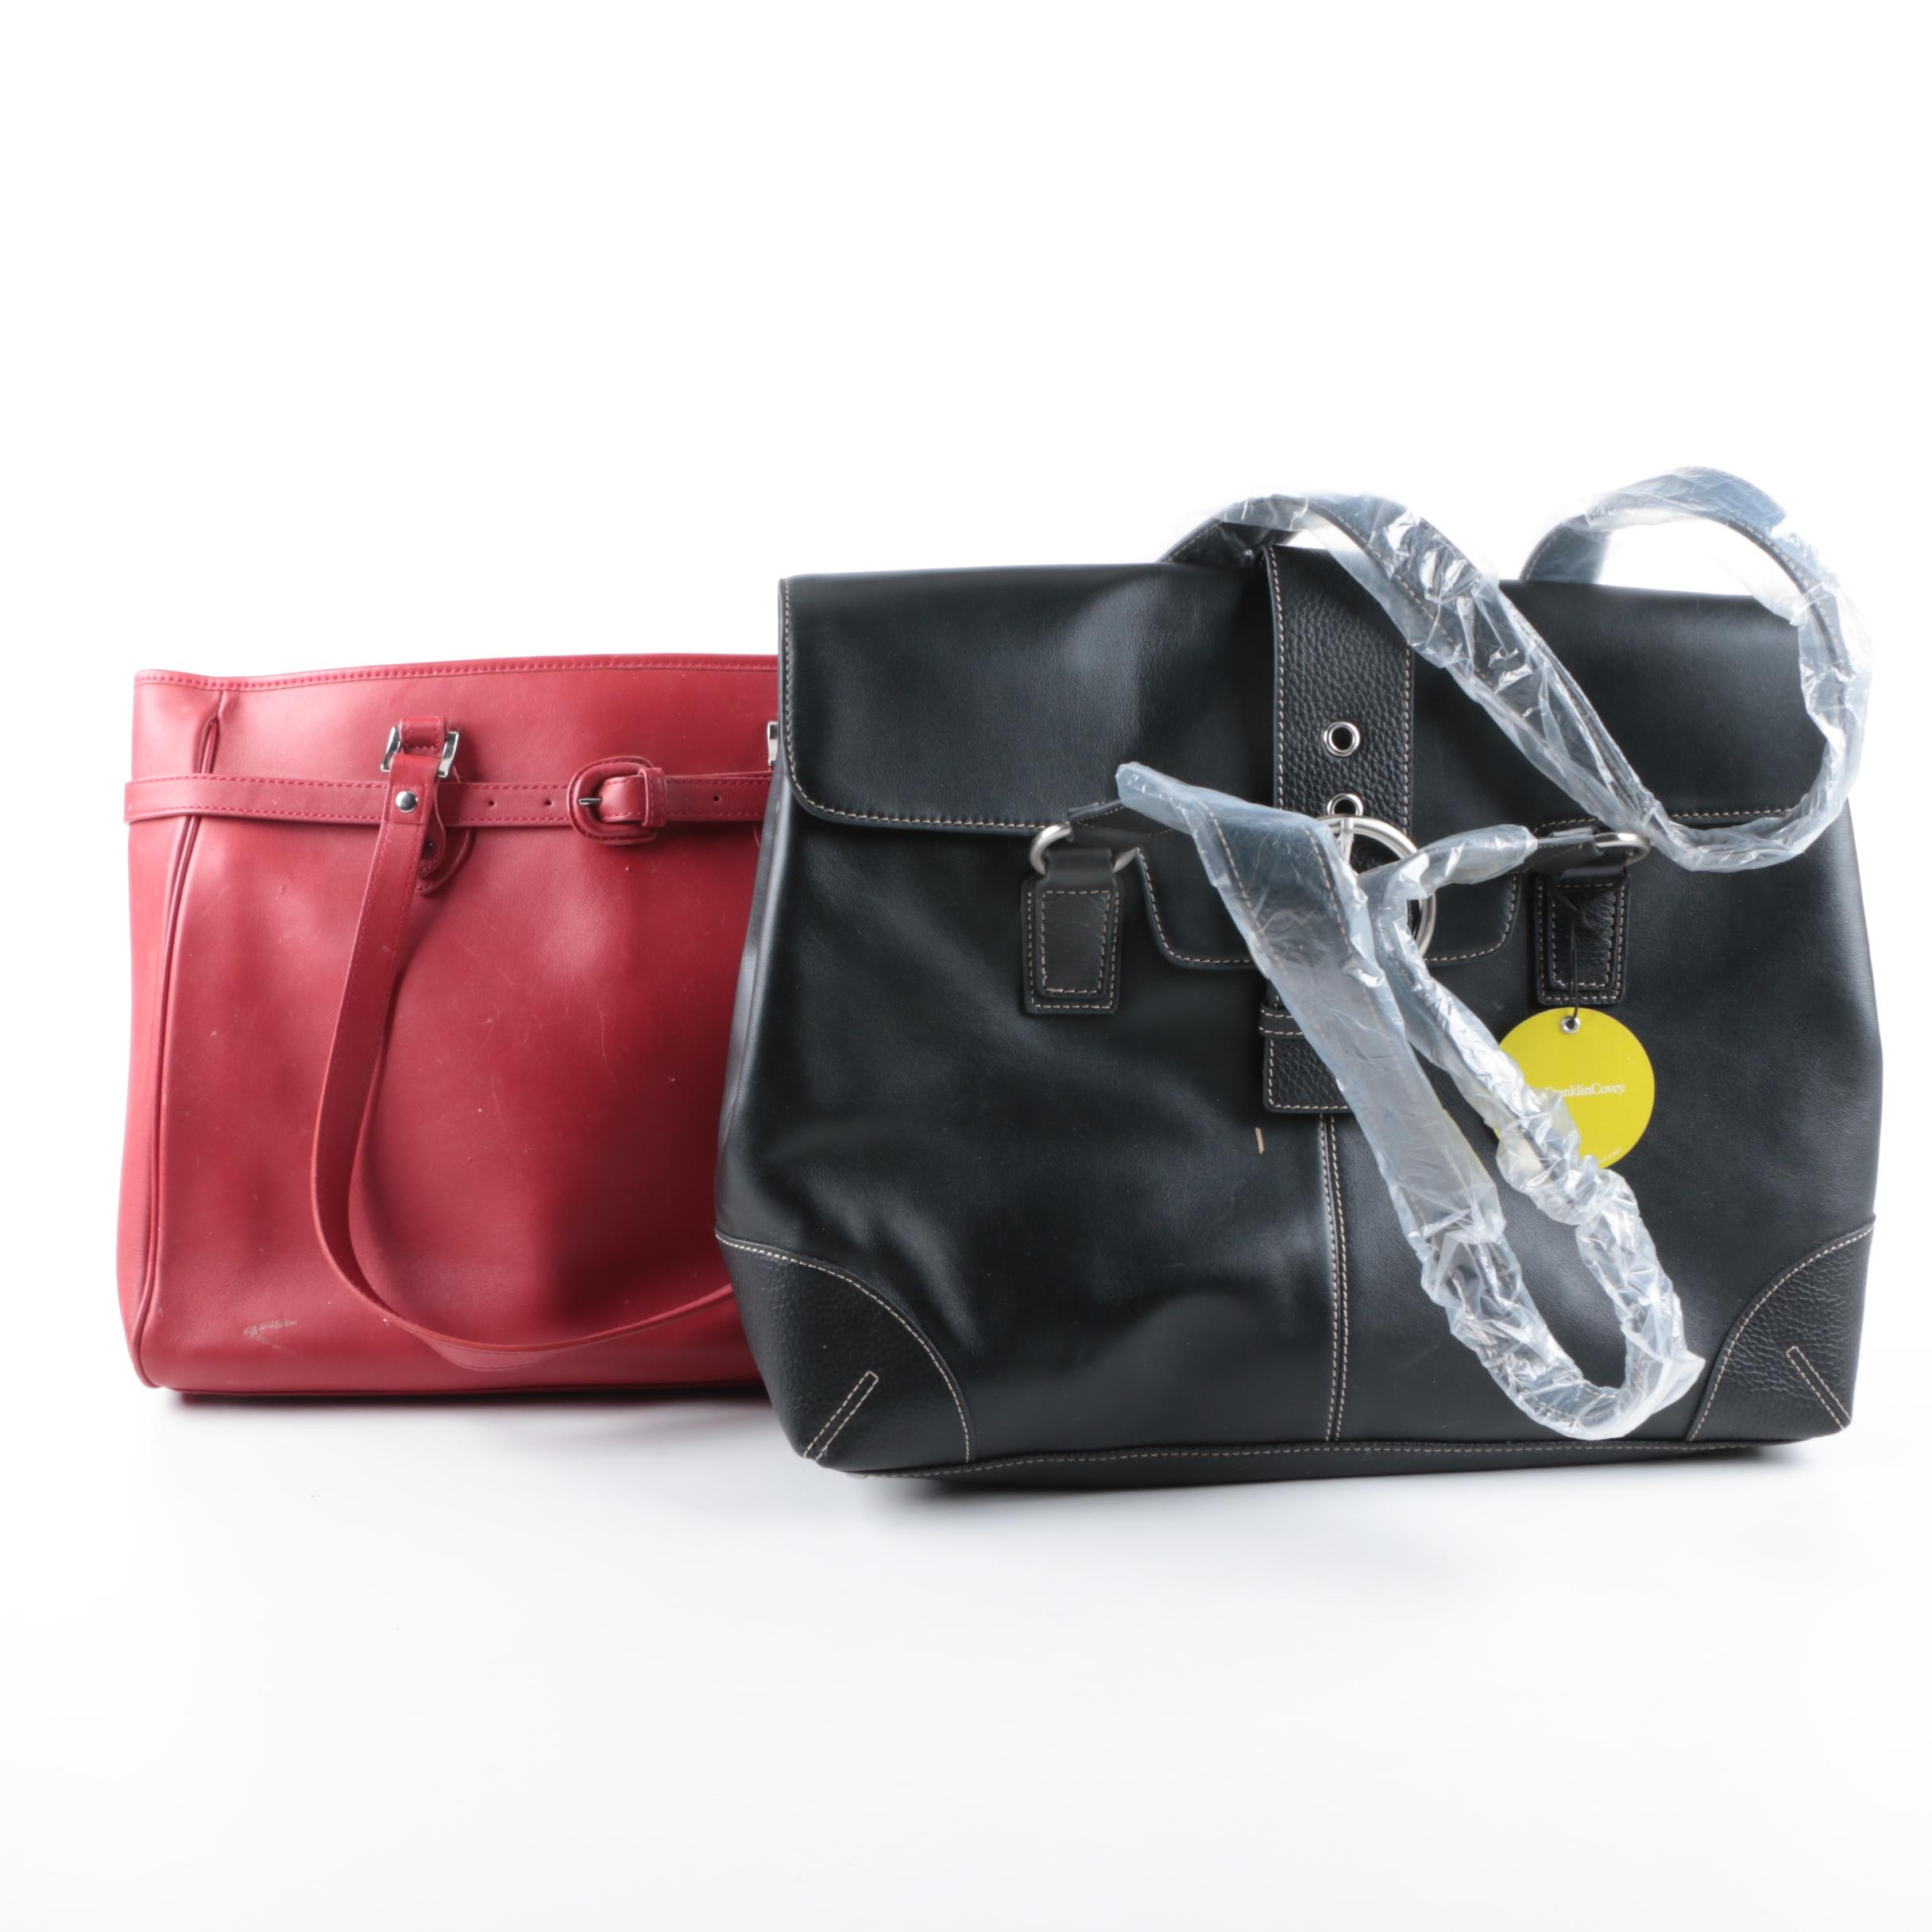 Franklin Covey and Jack Georges Leather Totes